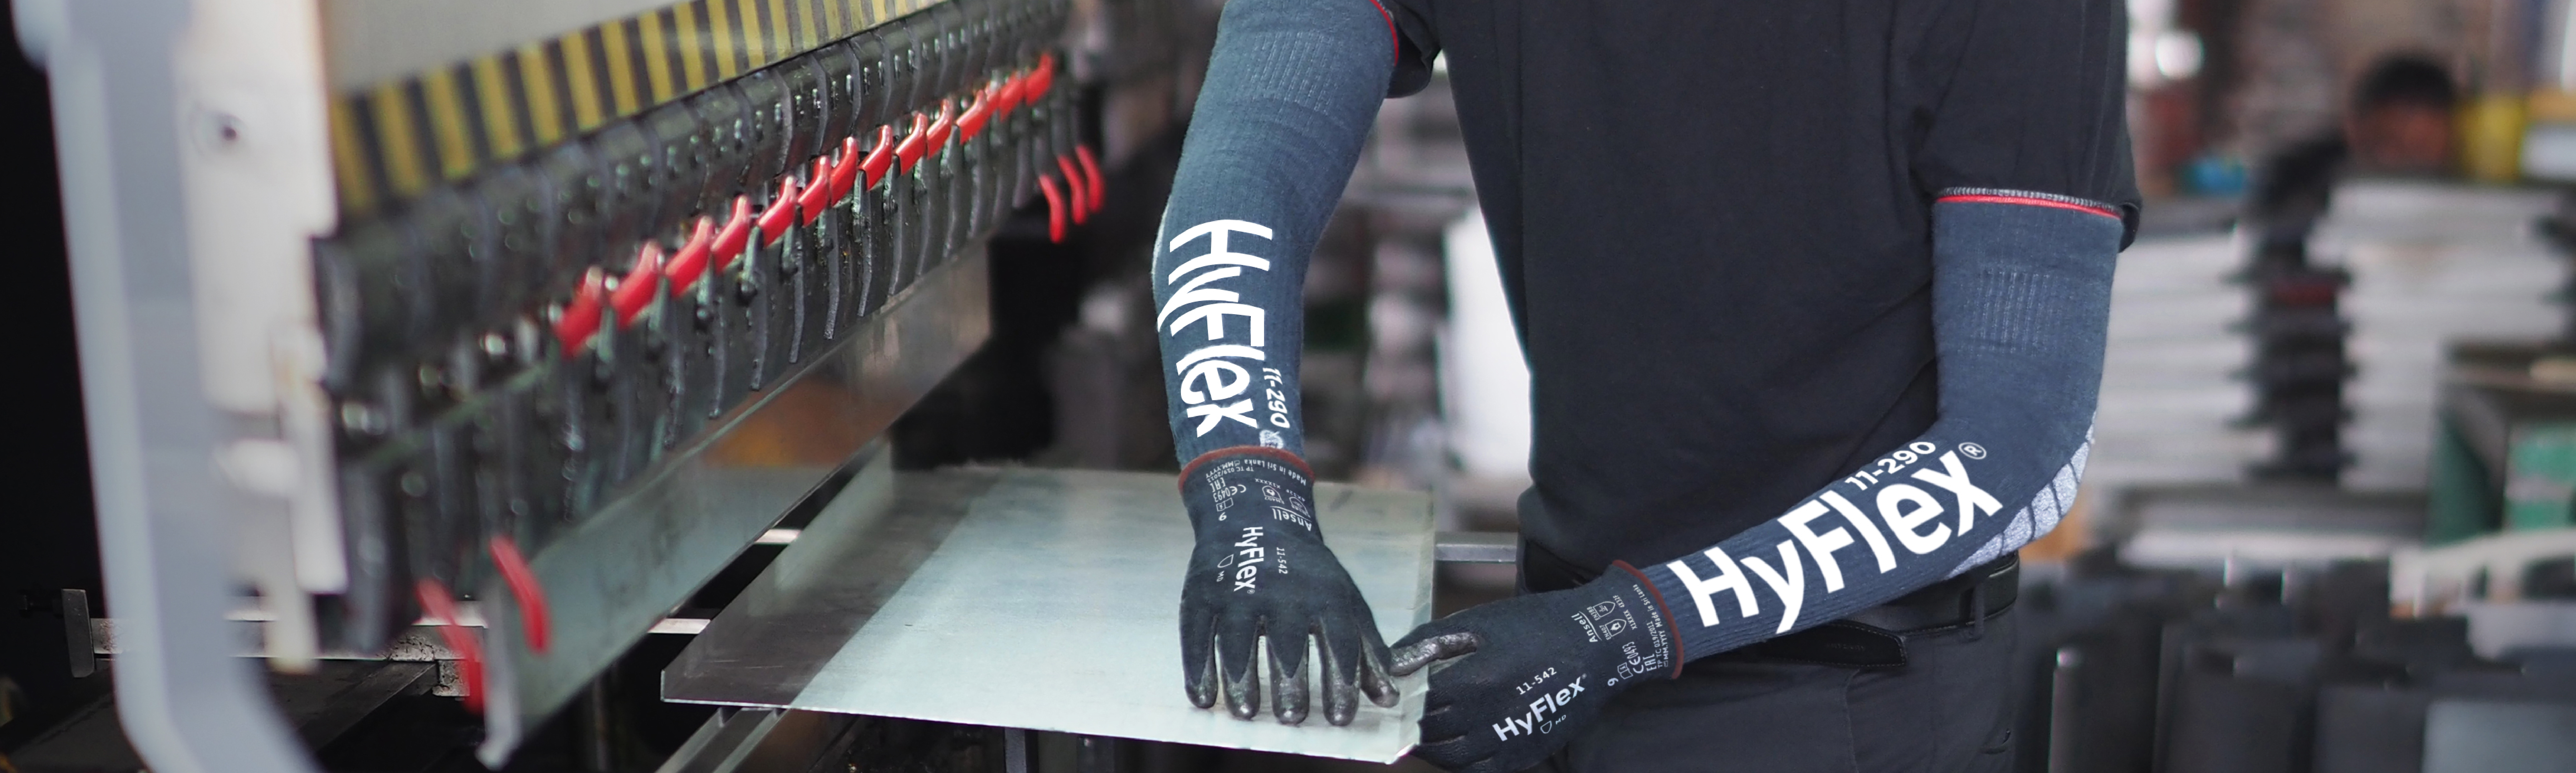 Cut resistant glove and sleeve working in hazardous environment.